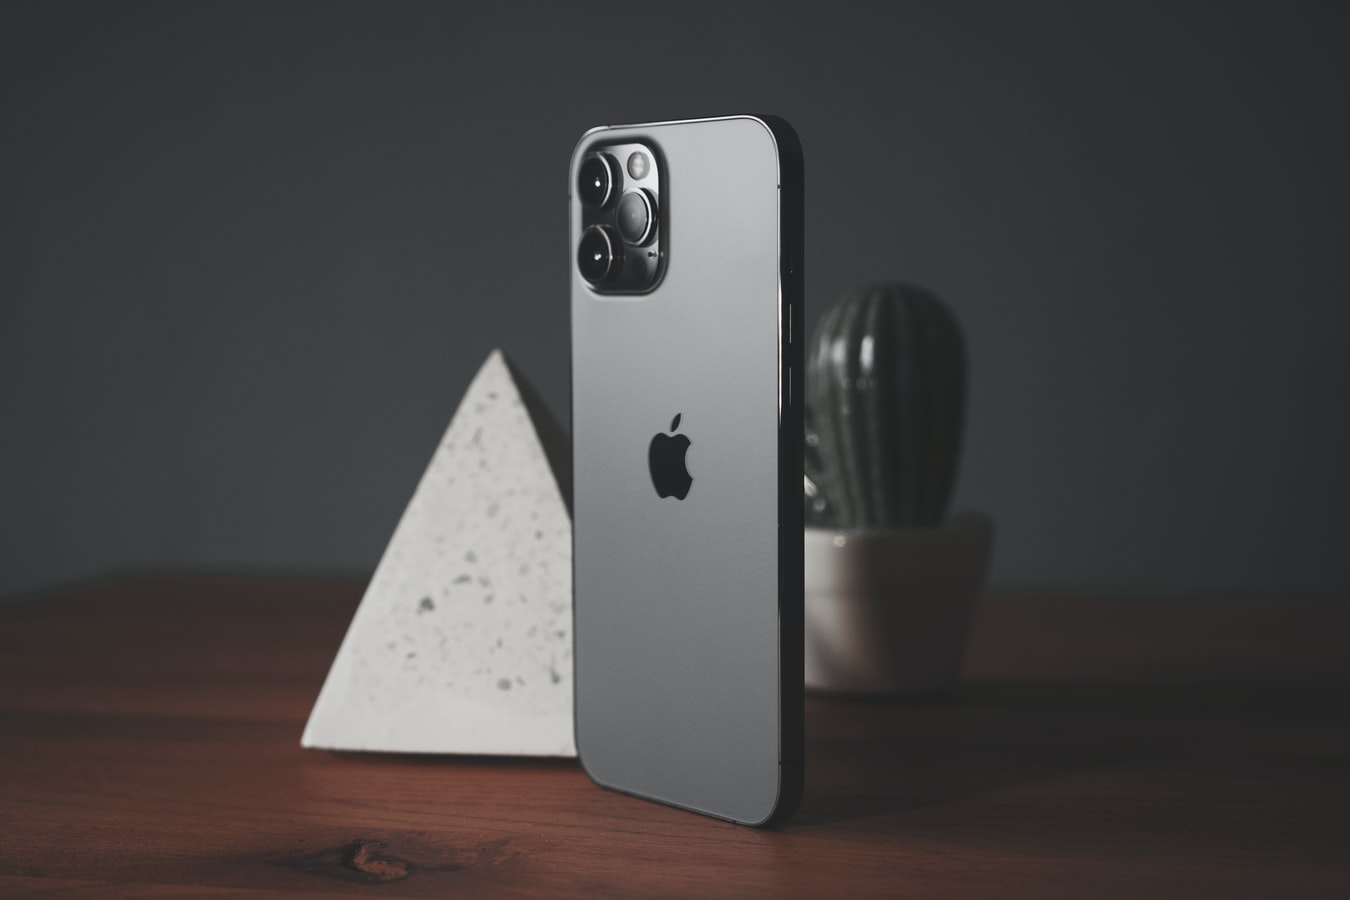 The iPhone 12 Pro Max standing on a table